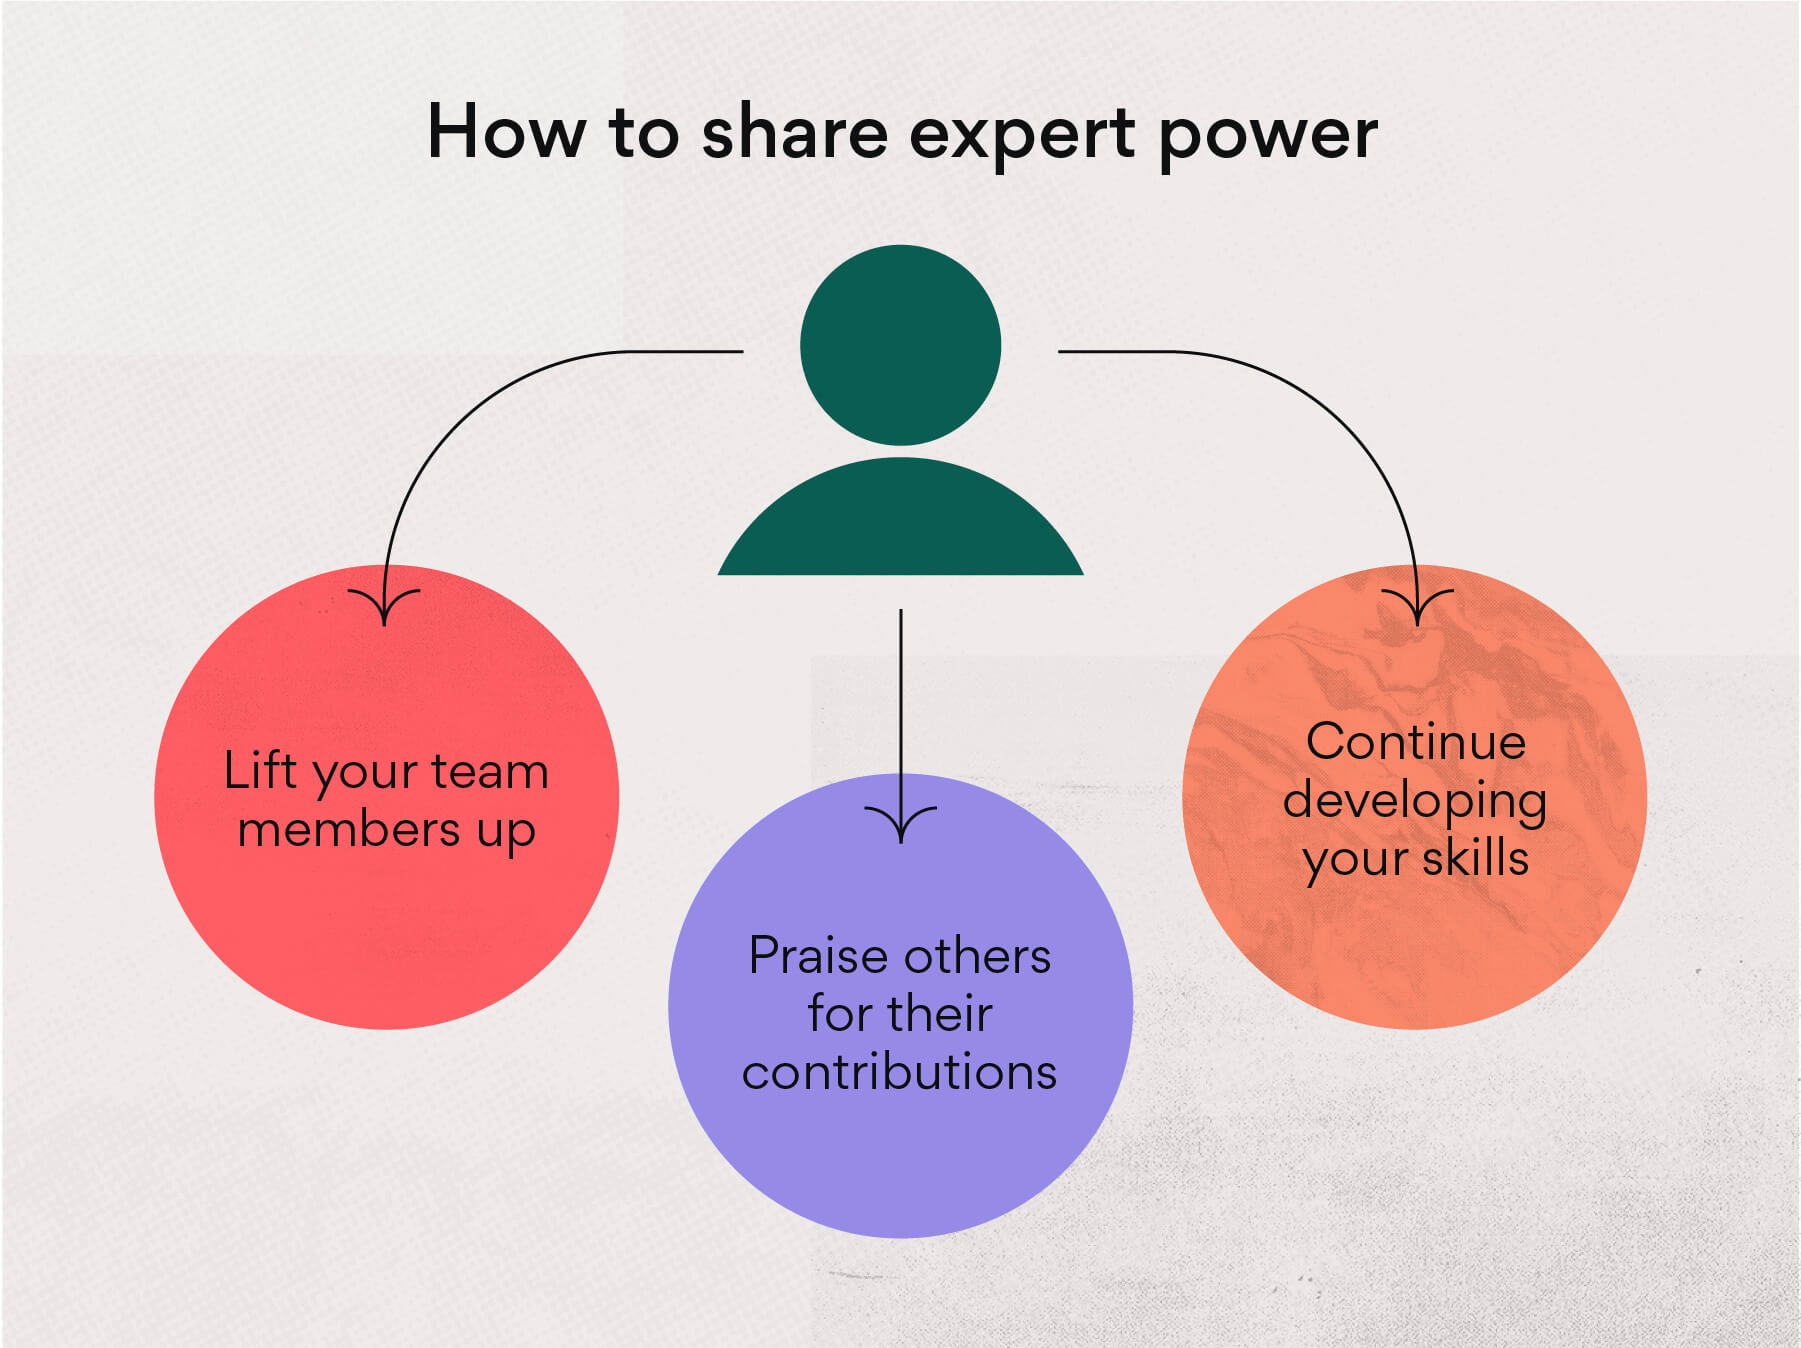 How to share expert power